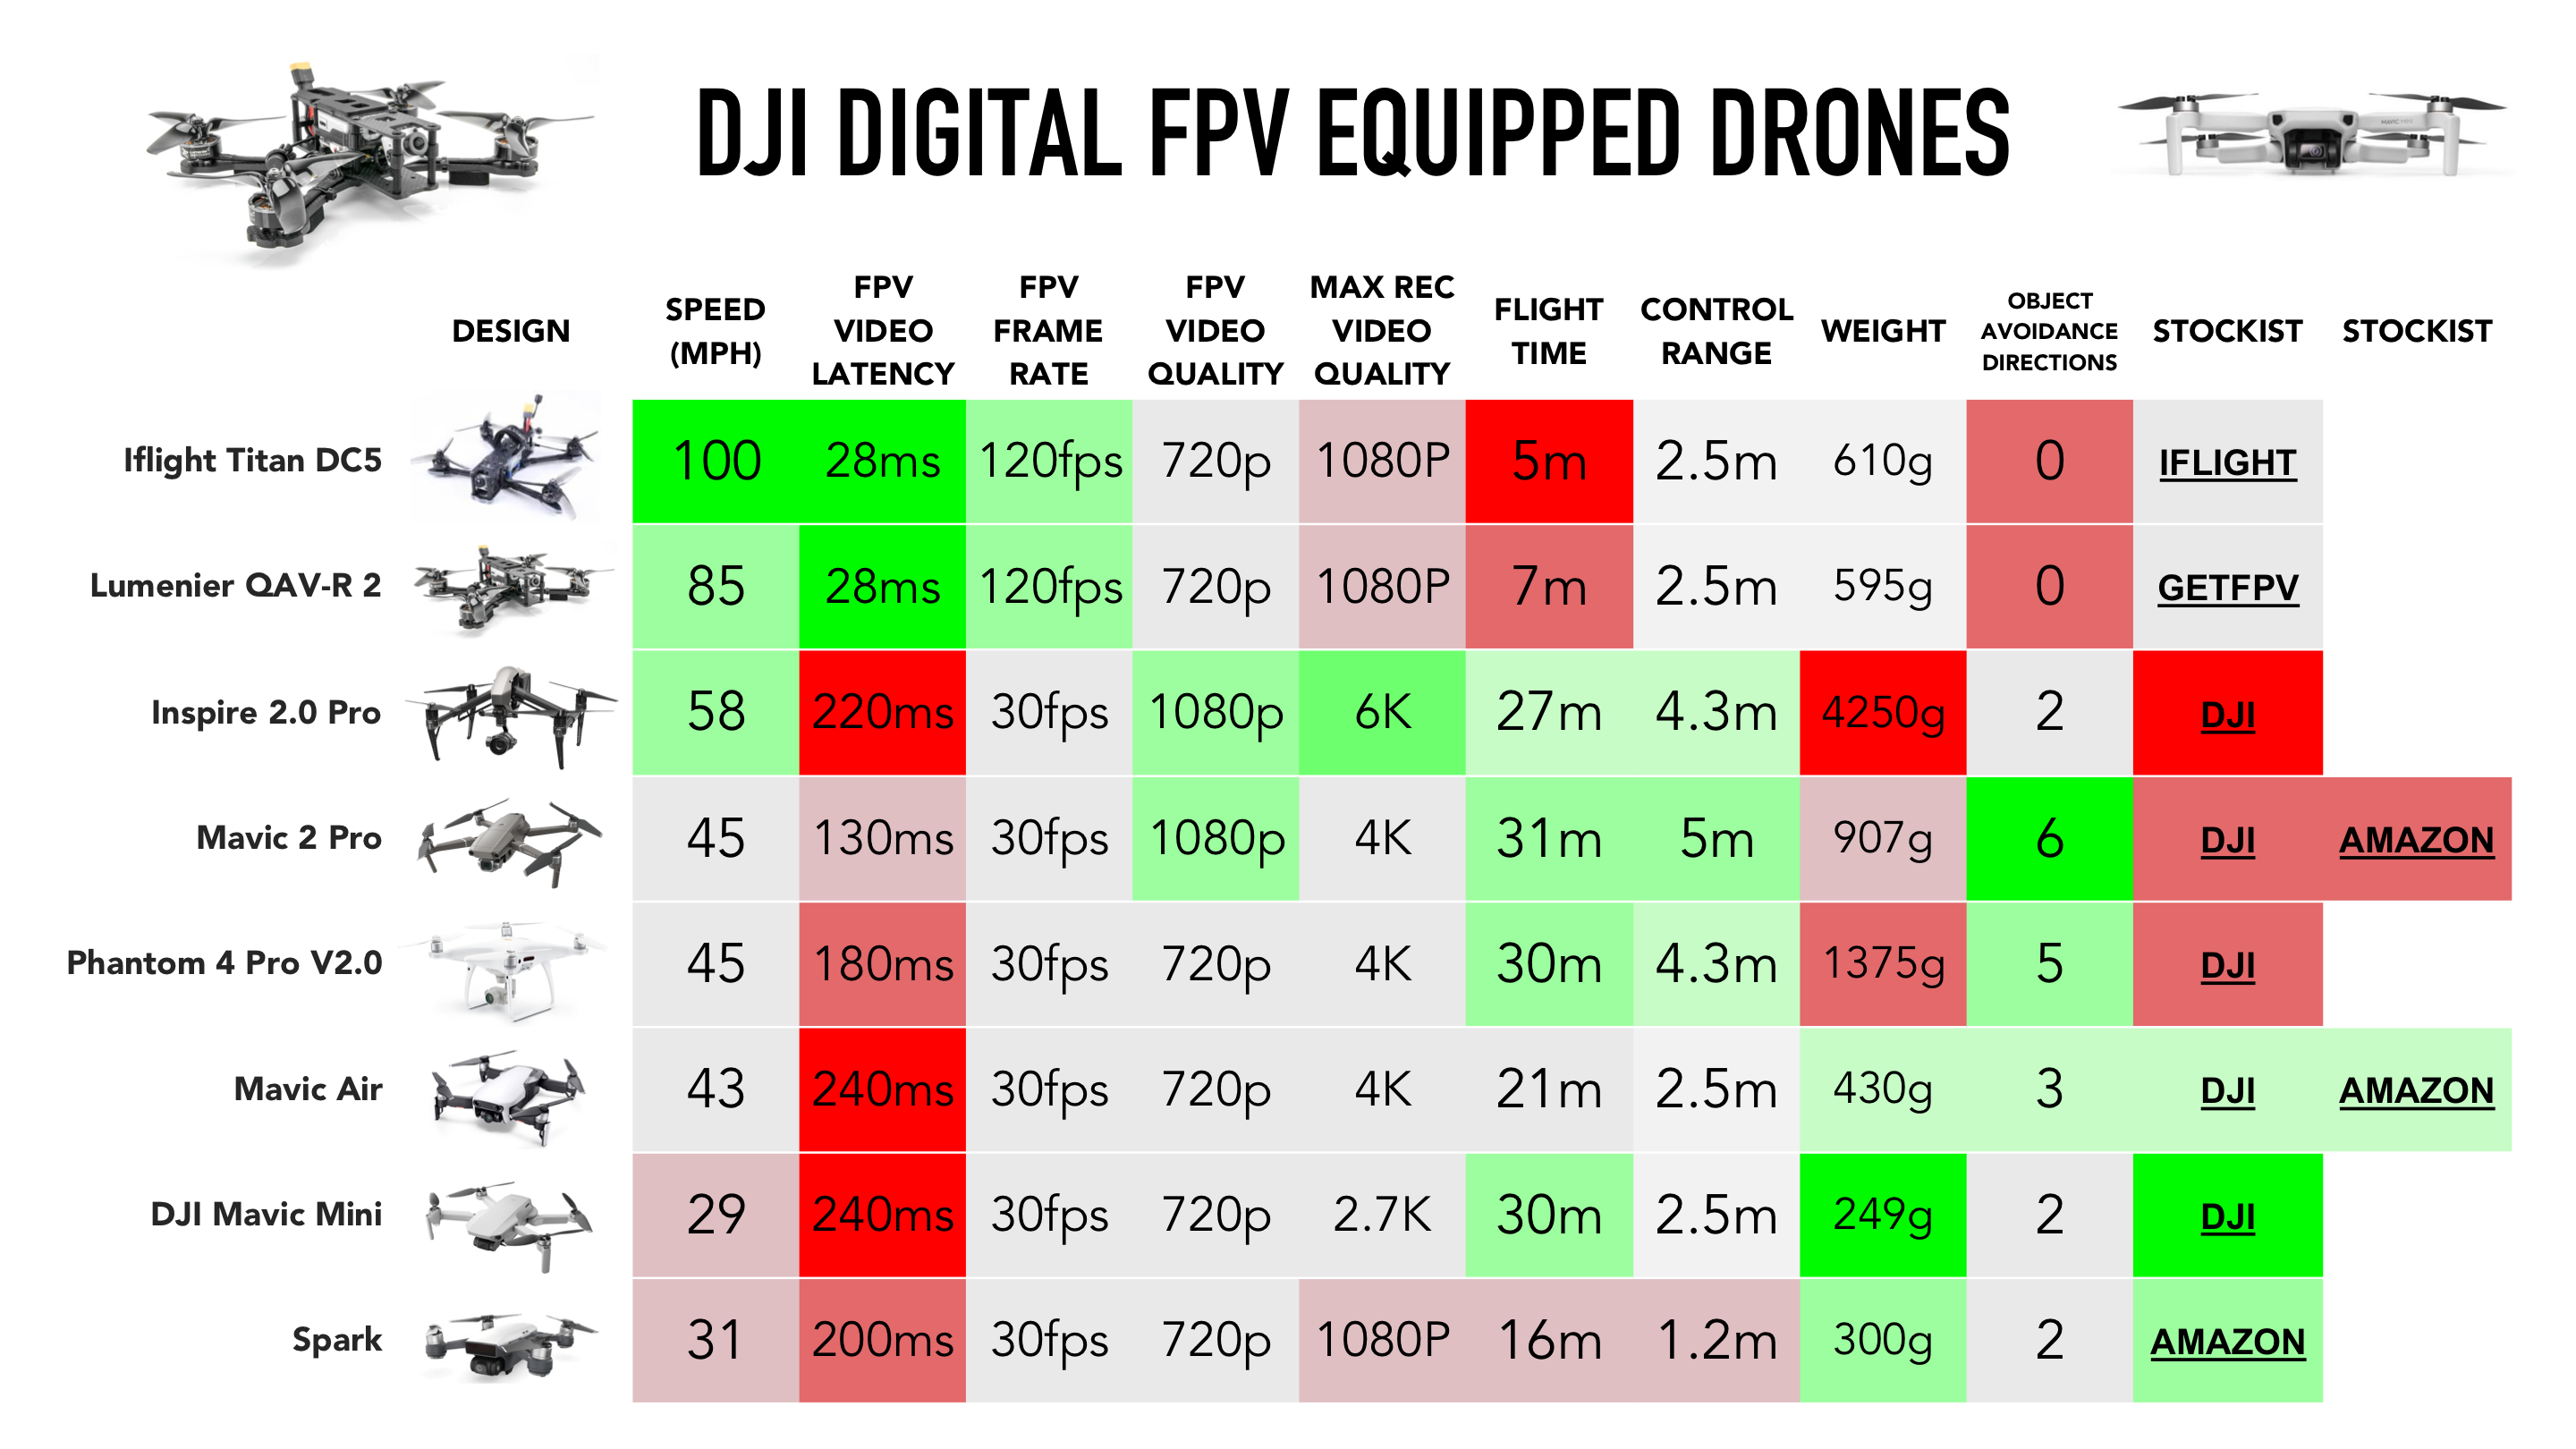 DJI drone features